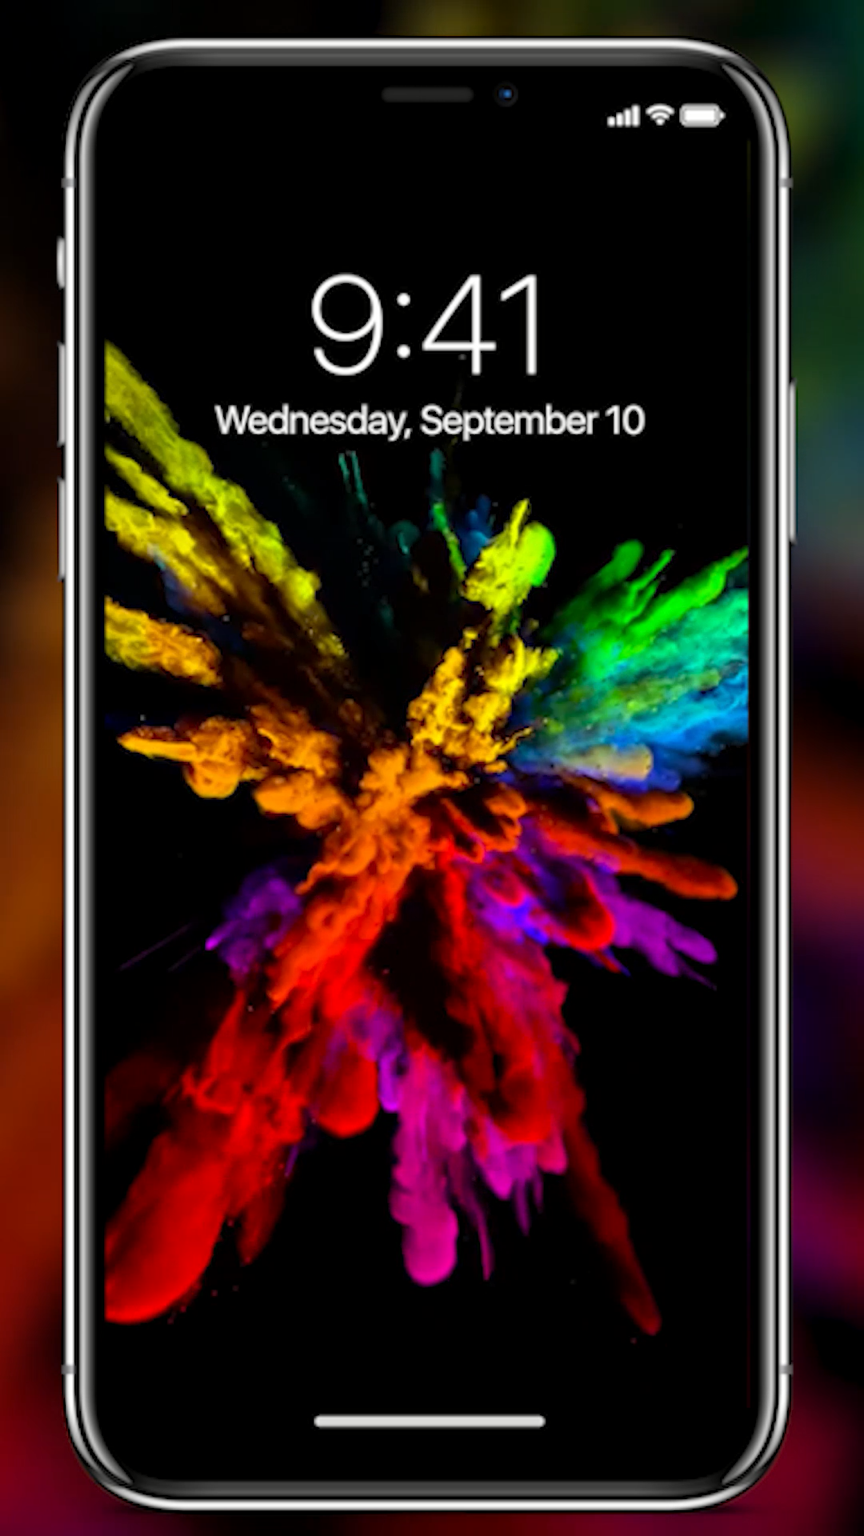 Does Iphone Xs Have Live Wallpaper